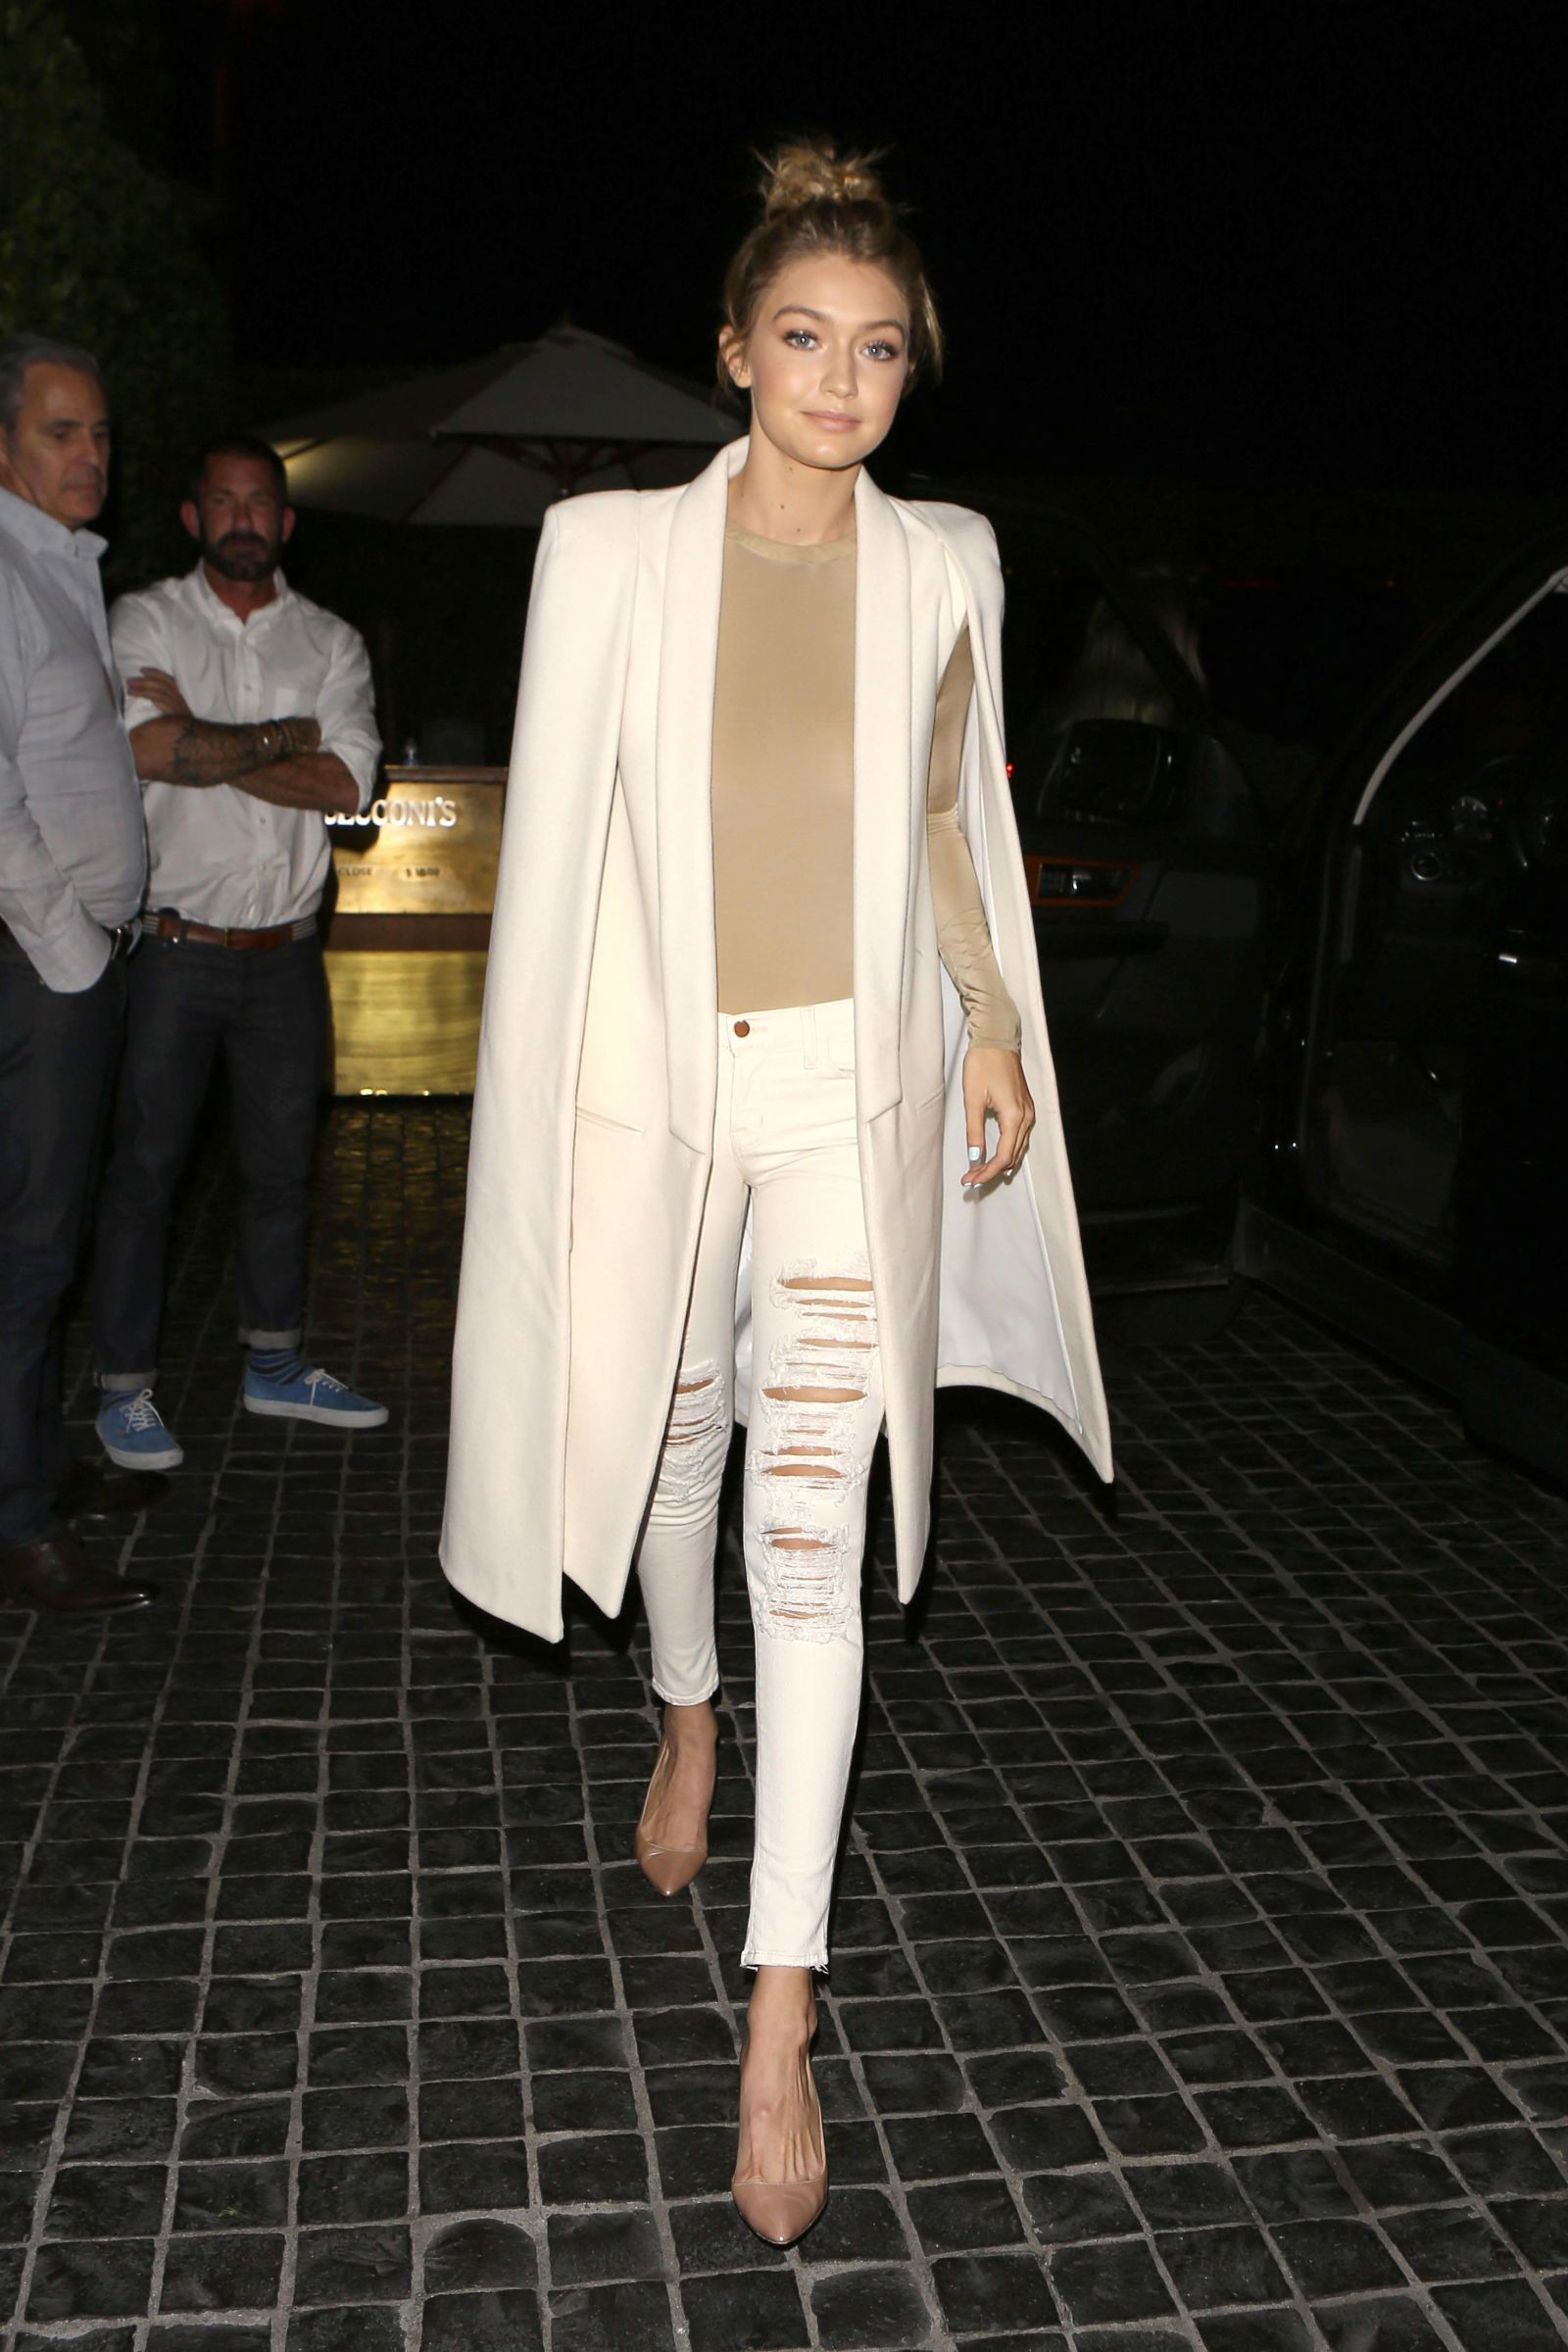 For a dinner date with the Kardashians in L.A., the model steps out in a white Olcay Gulsen coat paired with distressed denim, a nude bodysuit and matching heels.    - HarpersBAZAAR.com